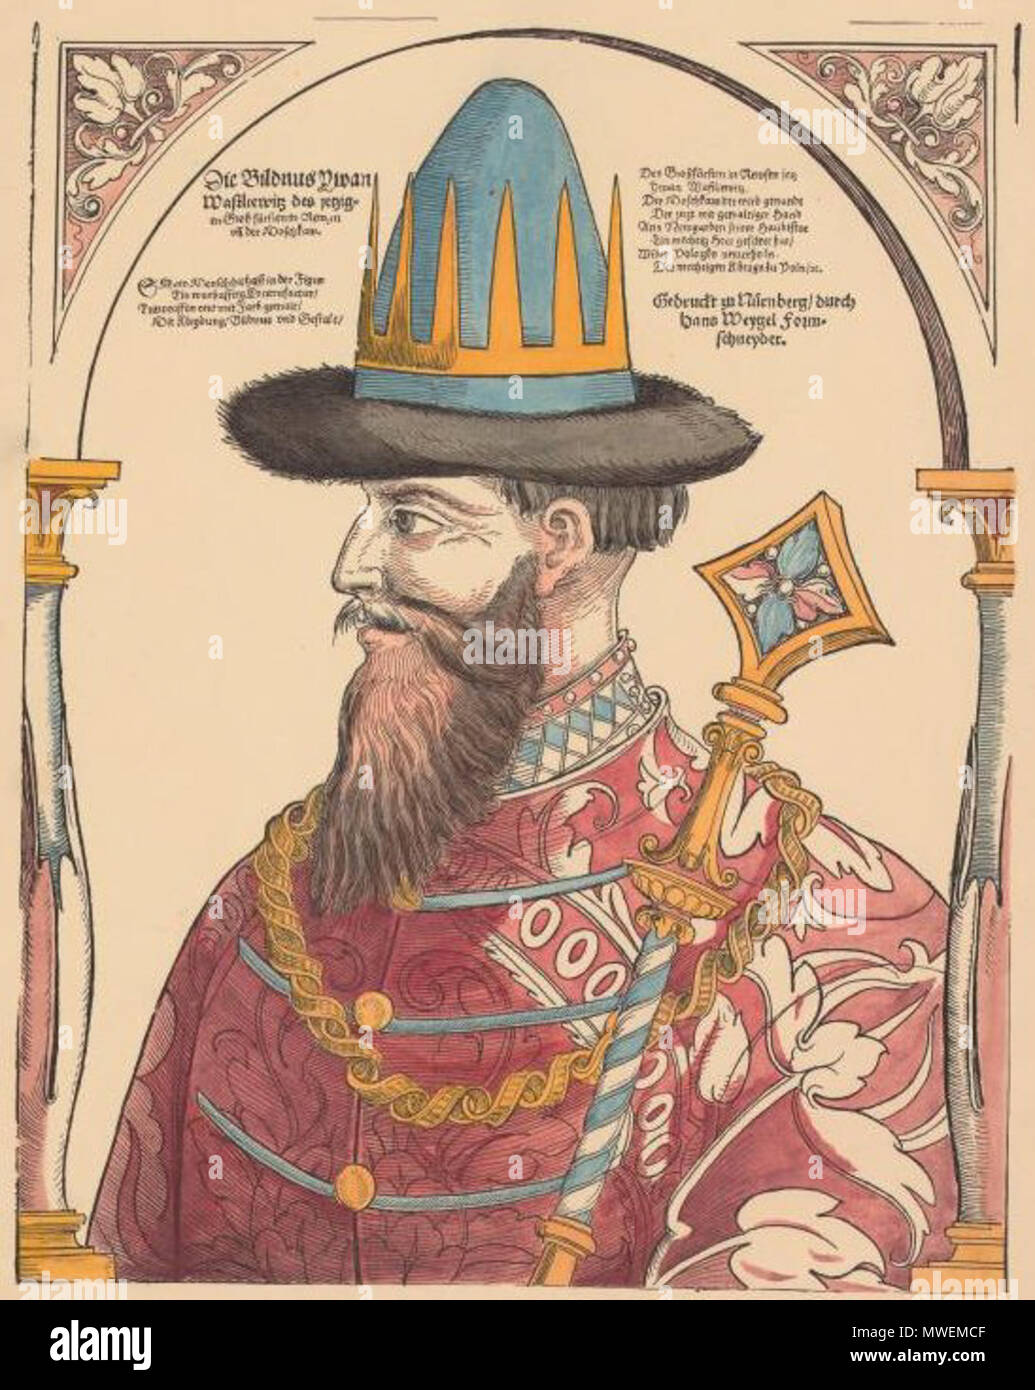 . English: Ivan IV the Terrible portrait by Weigel 1882 . 26 April 2012. Wiegel 1882 301 Ivan IV the Terrible portrait by Weigel 1882 - Stock Image